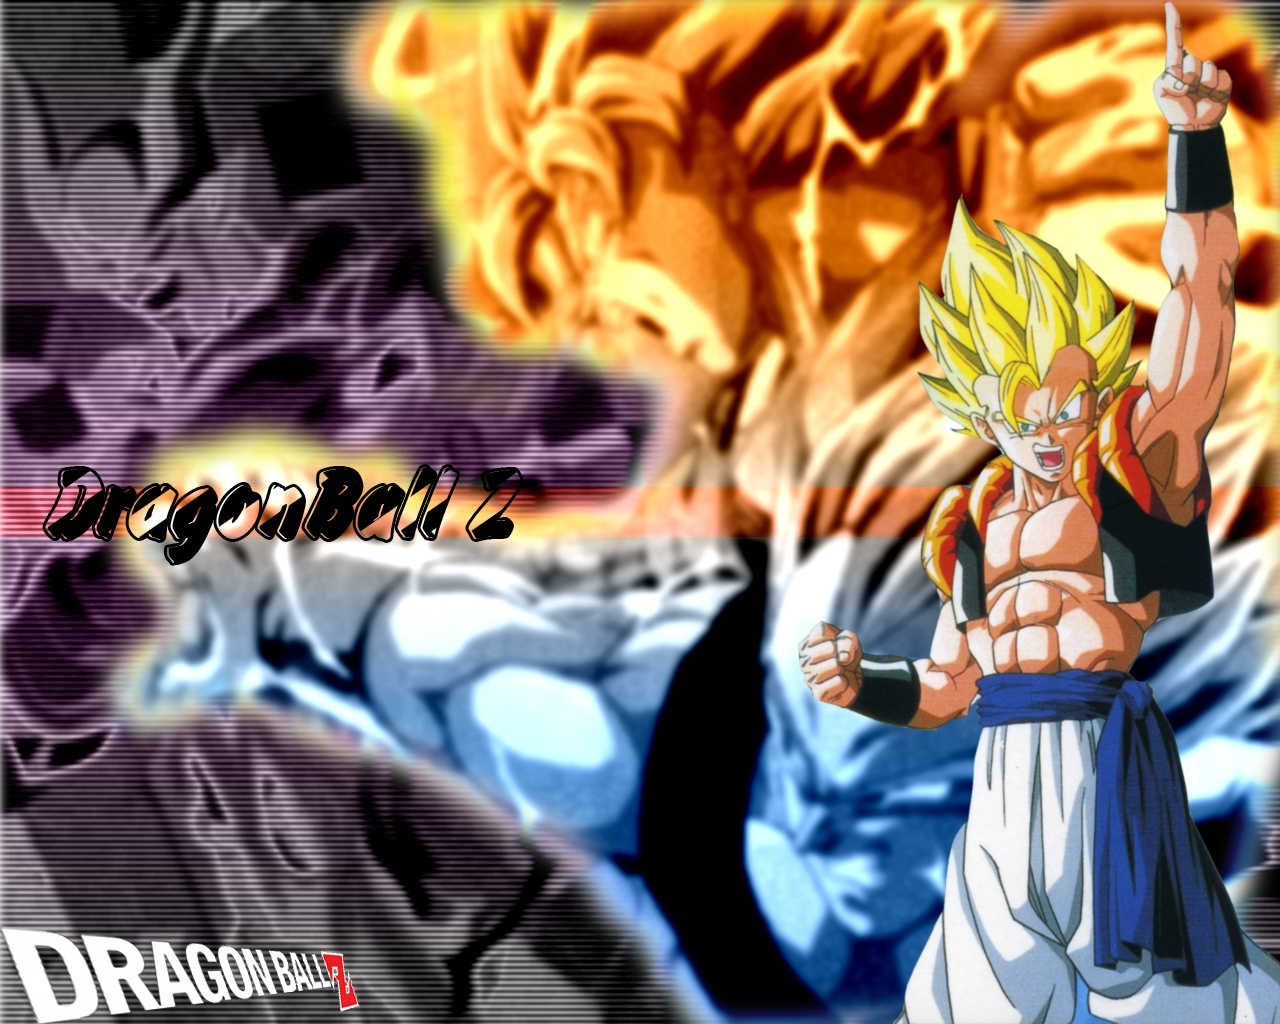 download wallpaper dragon ball z - sf wallpaper